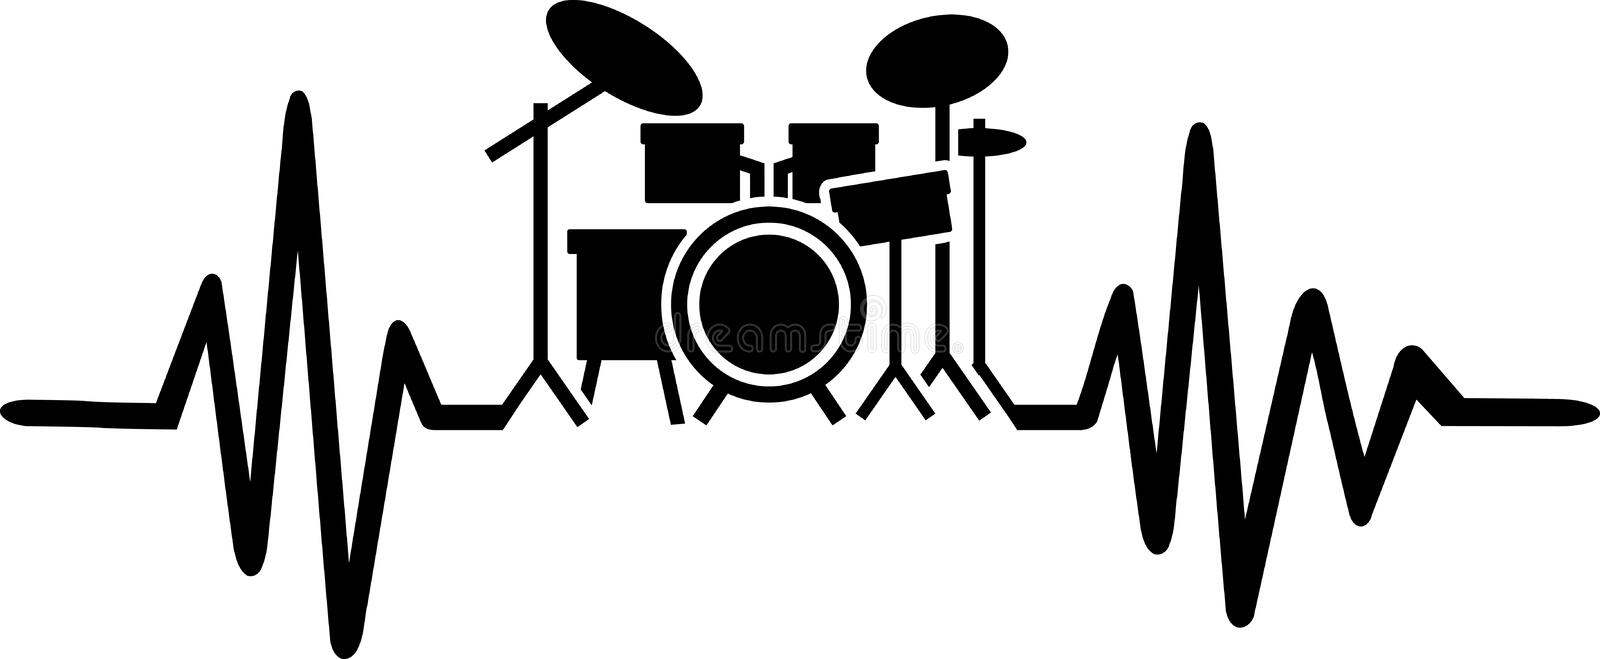 Drummer heartbeat line with drums. Heartbeat pulse line drummer with drums vector illustration